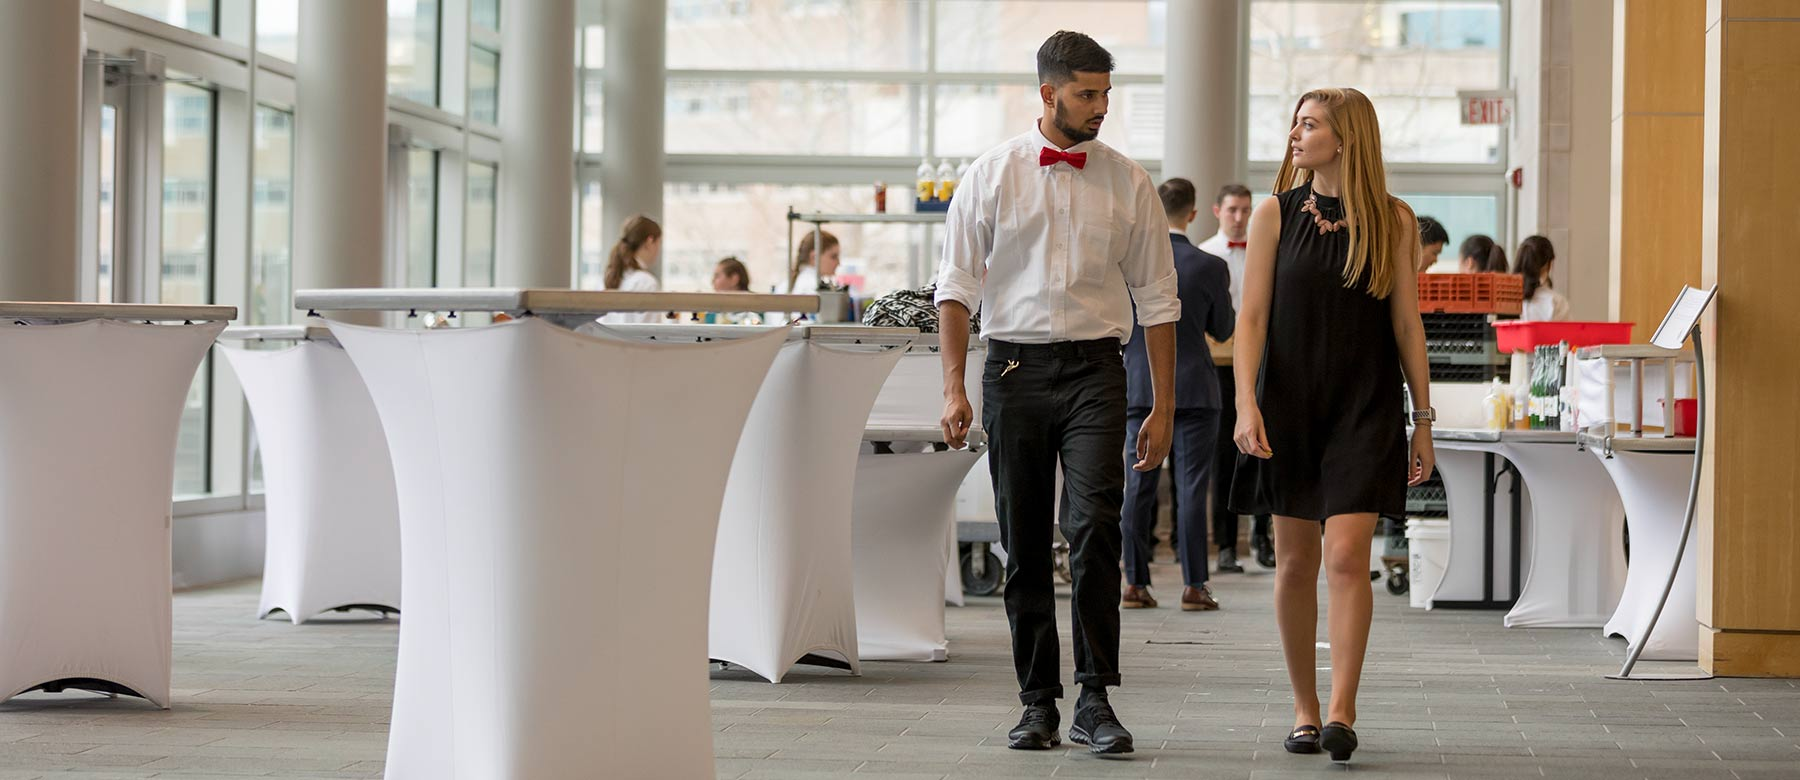 Two students walking in business attire